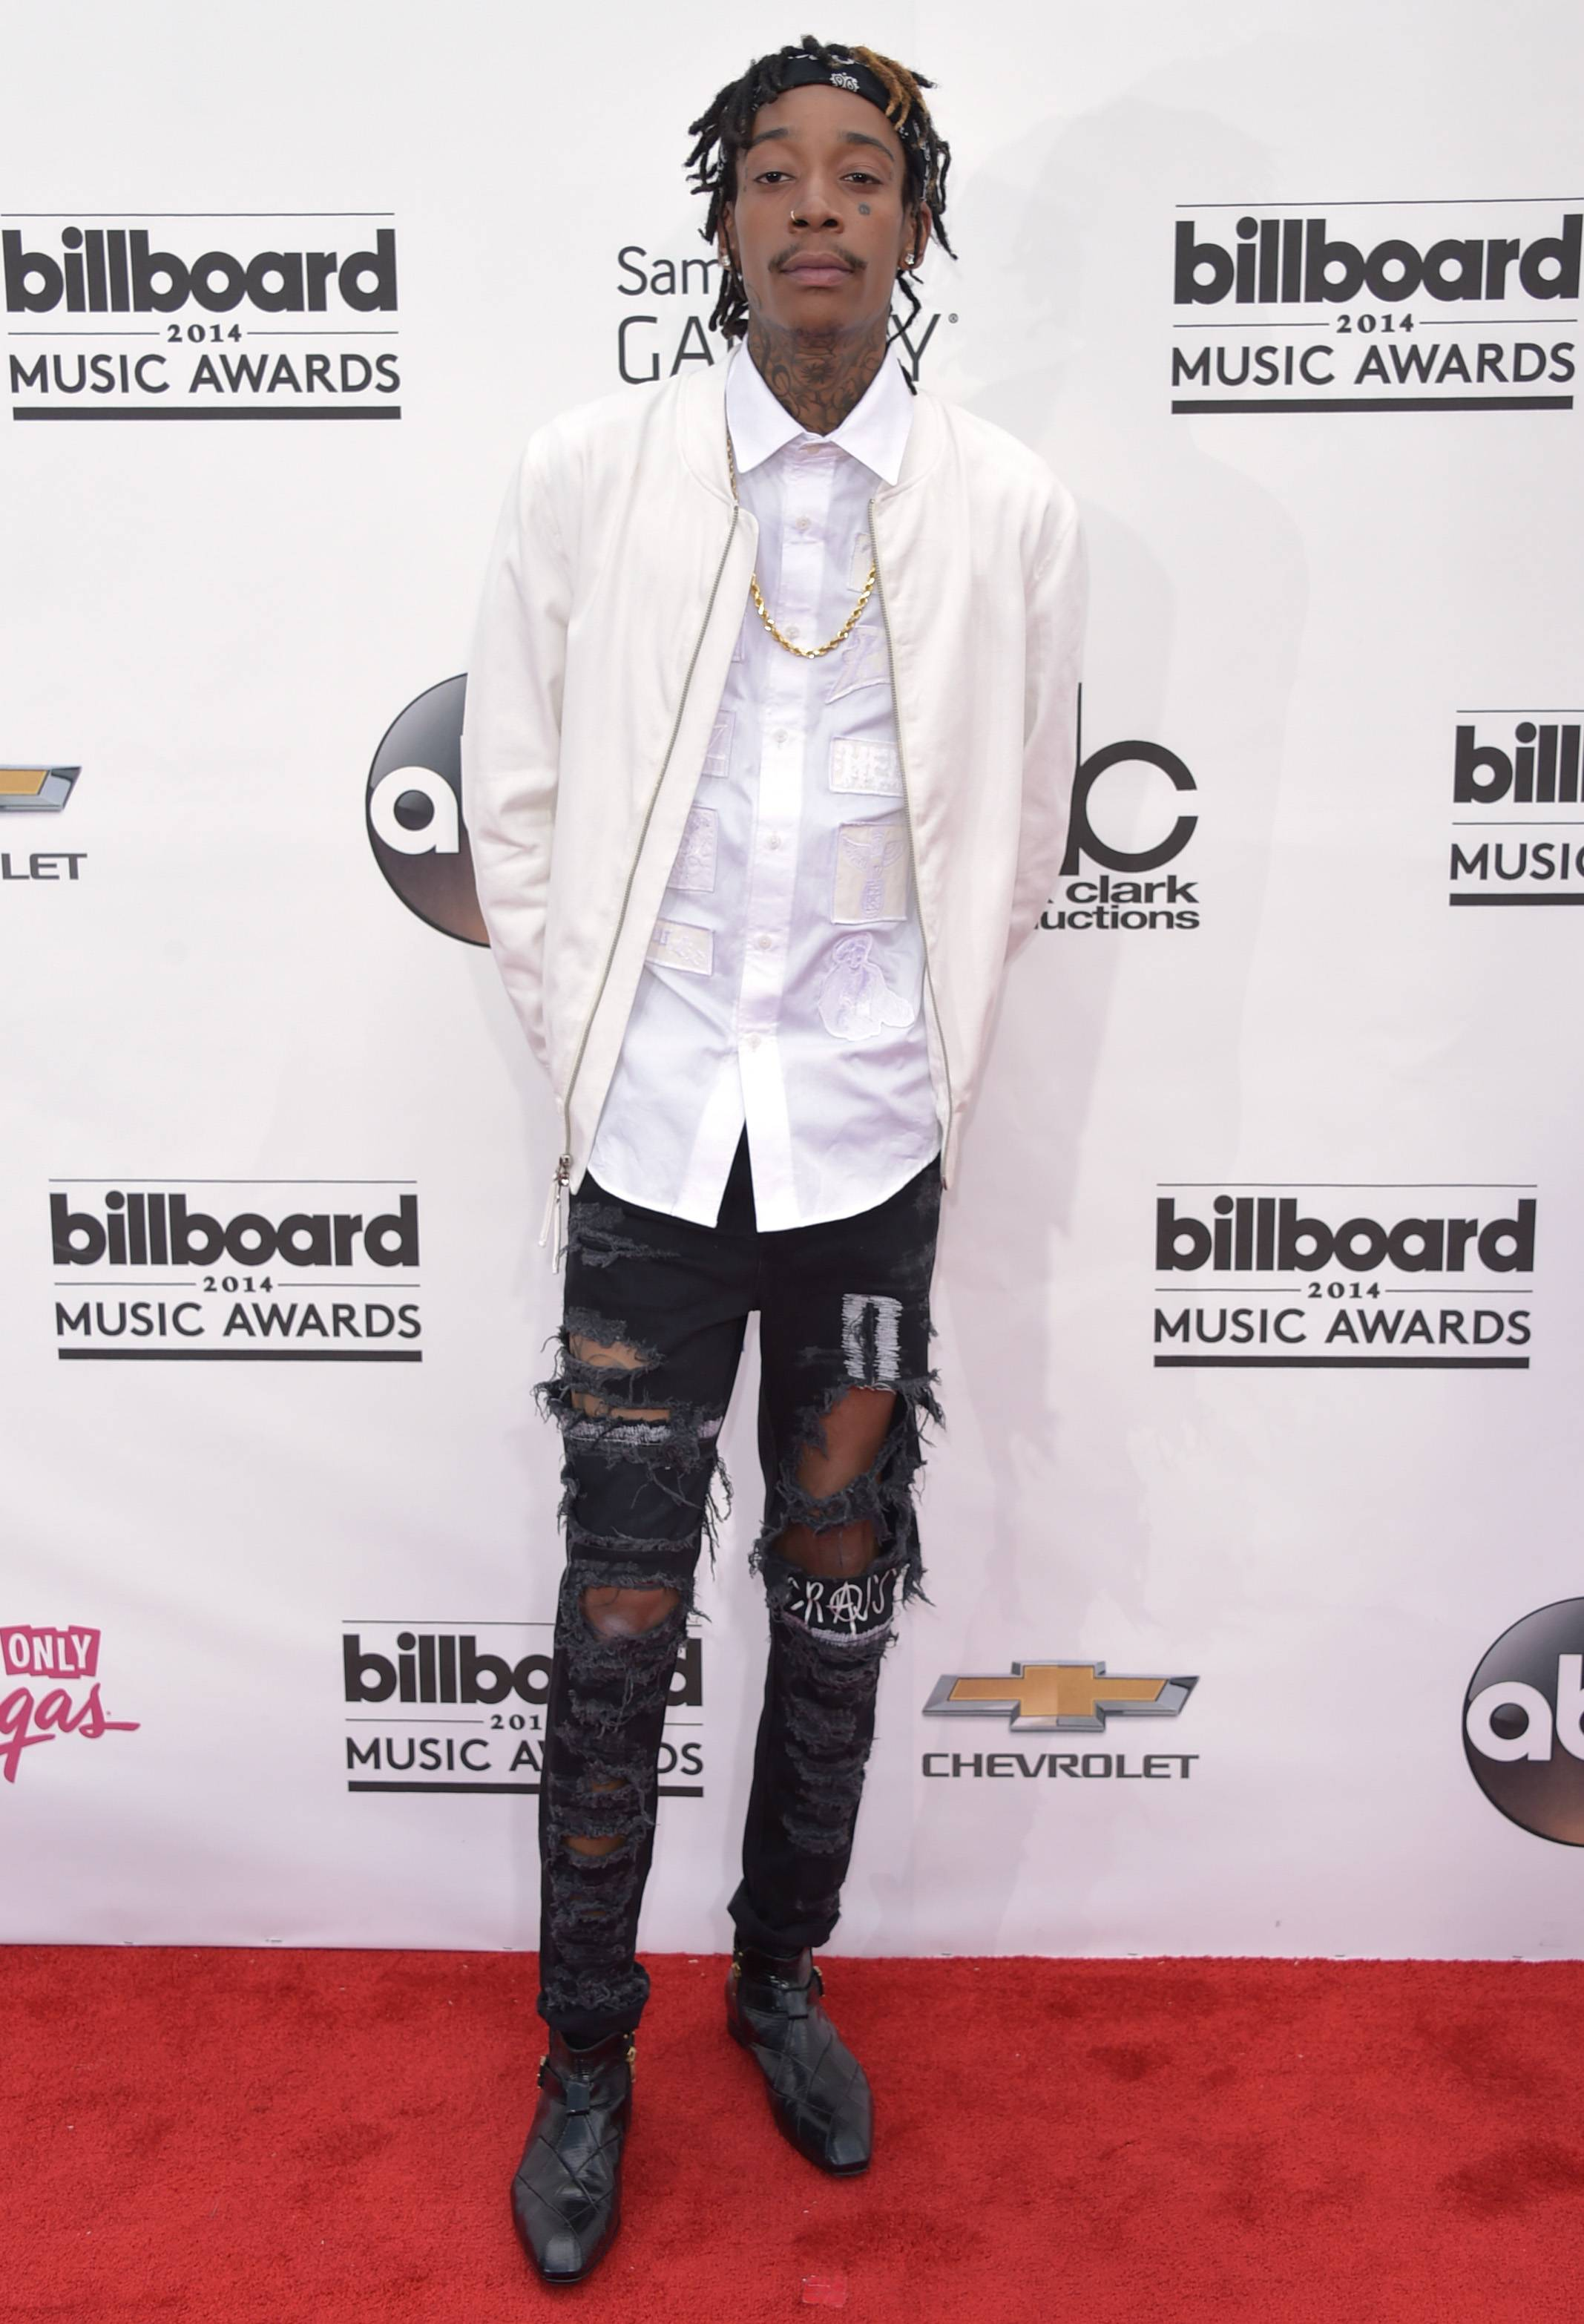 Wiz Khalifa arrives at the Billboard Music Awards at the MGM Grand Garden Arena on Sunday, May 18, 2014, in Las Vegas.